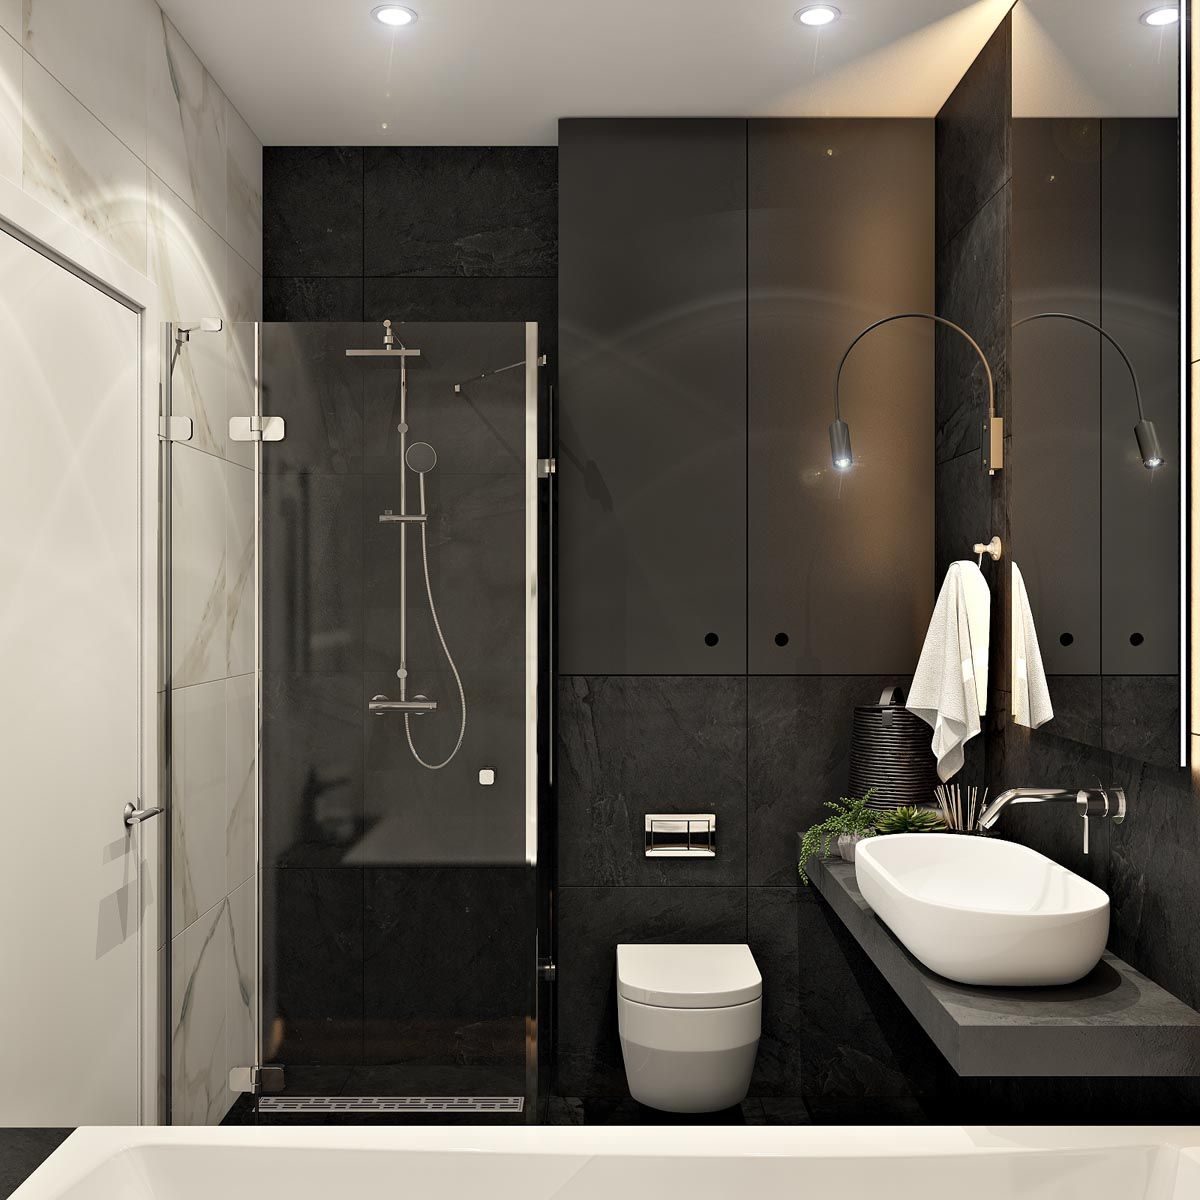 2 Masculine Interiors In Shades Of Grey Black Brown Mit Bildern Dekoration Badezimmer Offene Wohnung Schwarzes Badezimmer